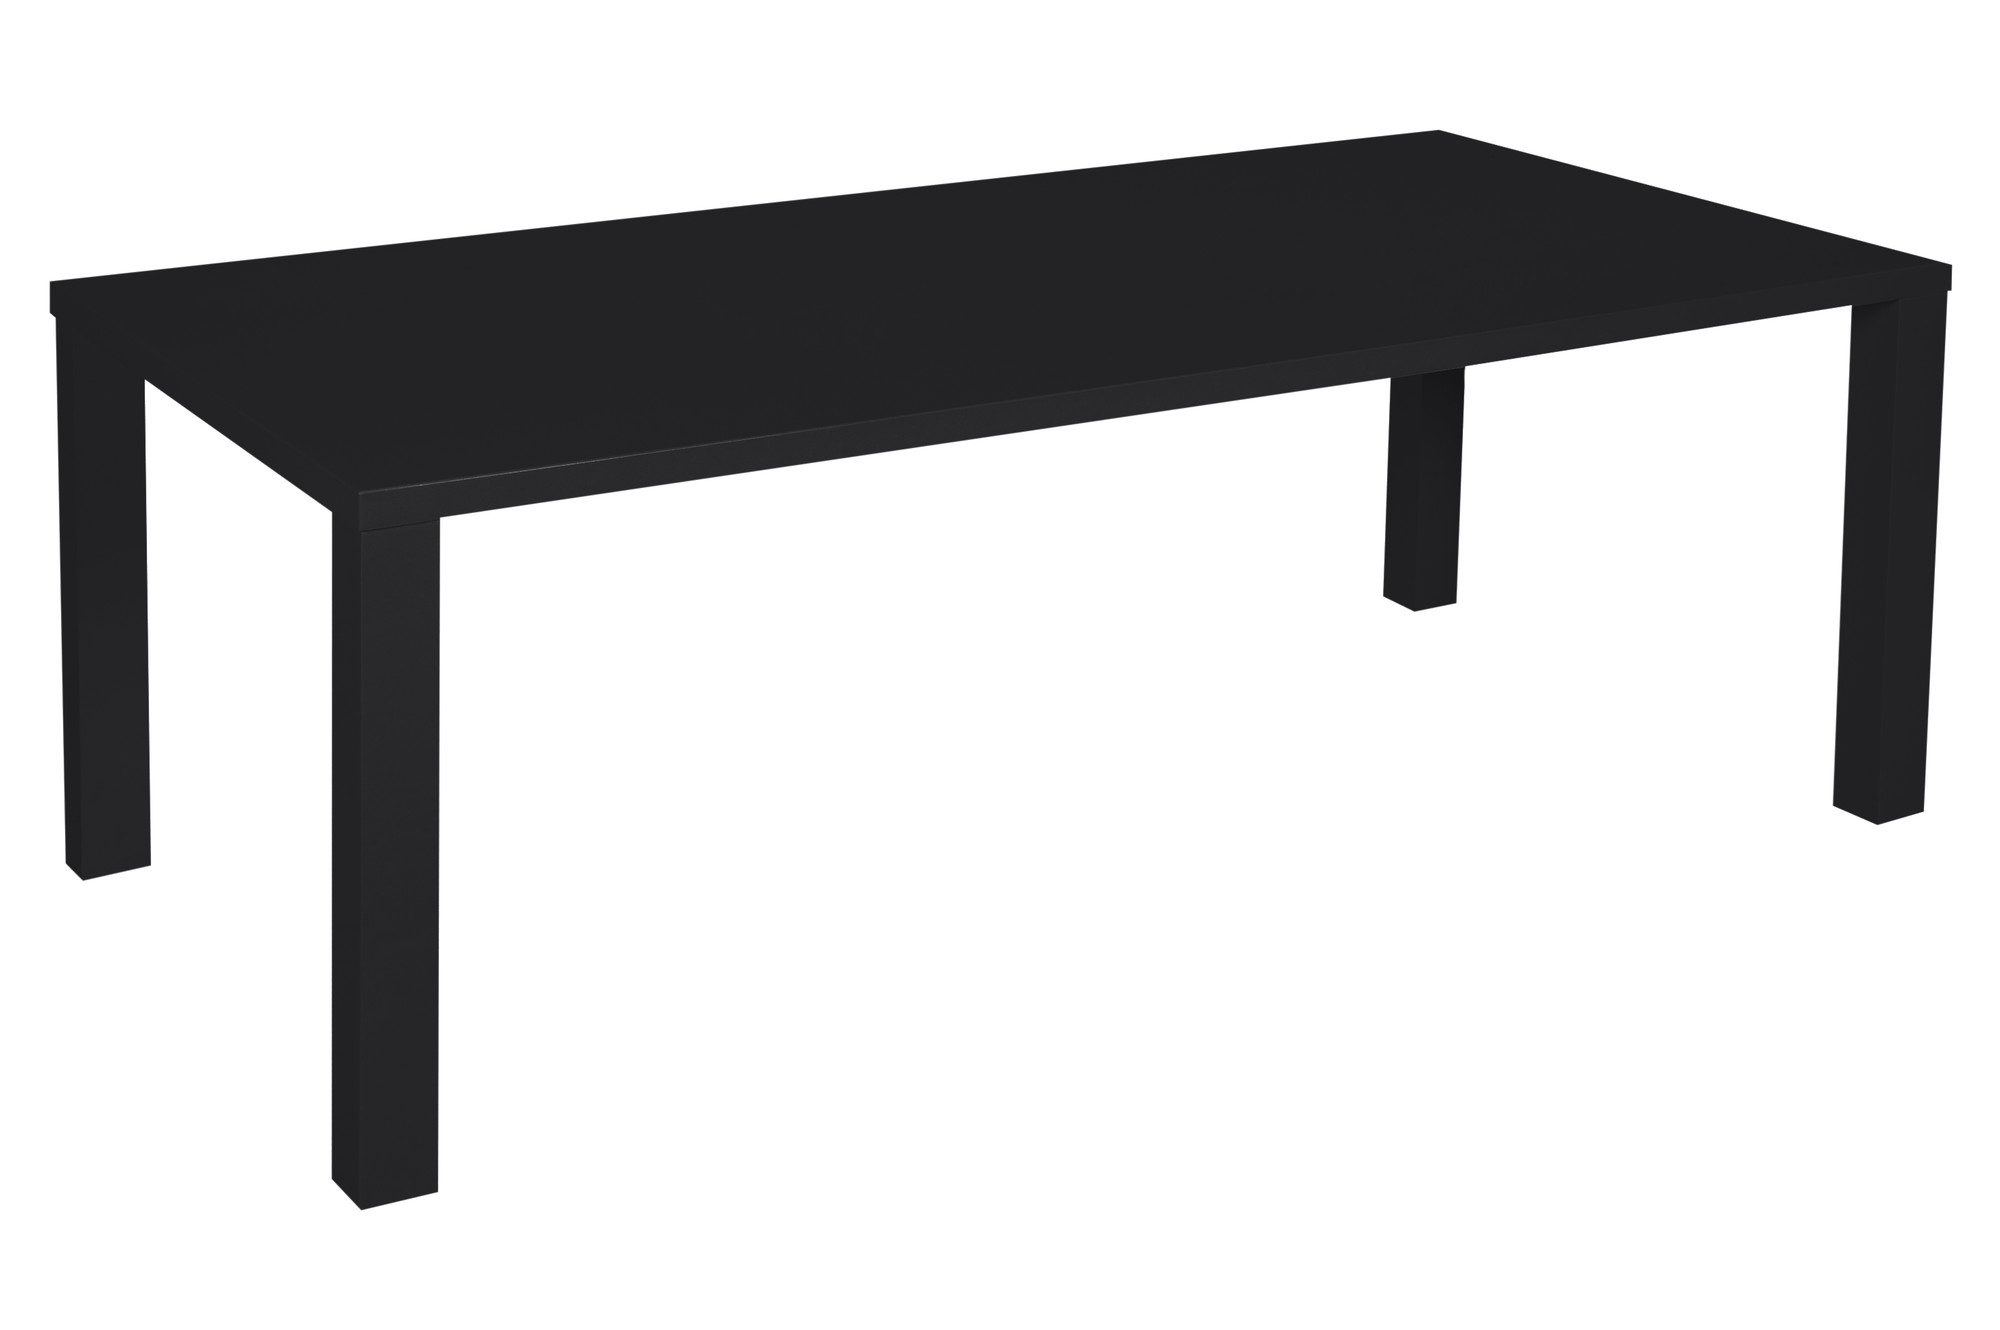 Temple & Webster With Regard To Black Gloss Dining Tables (Gallery 6 of 25)